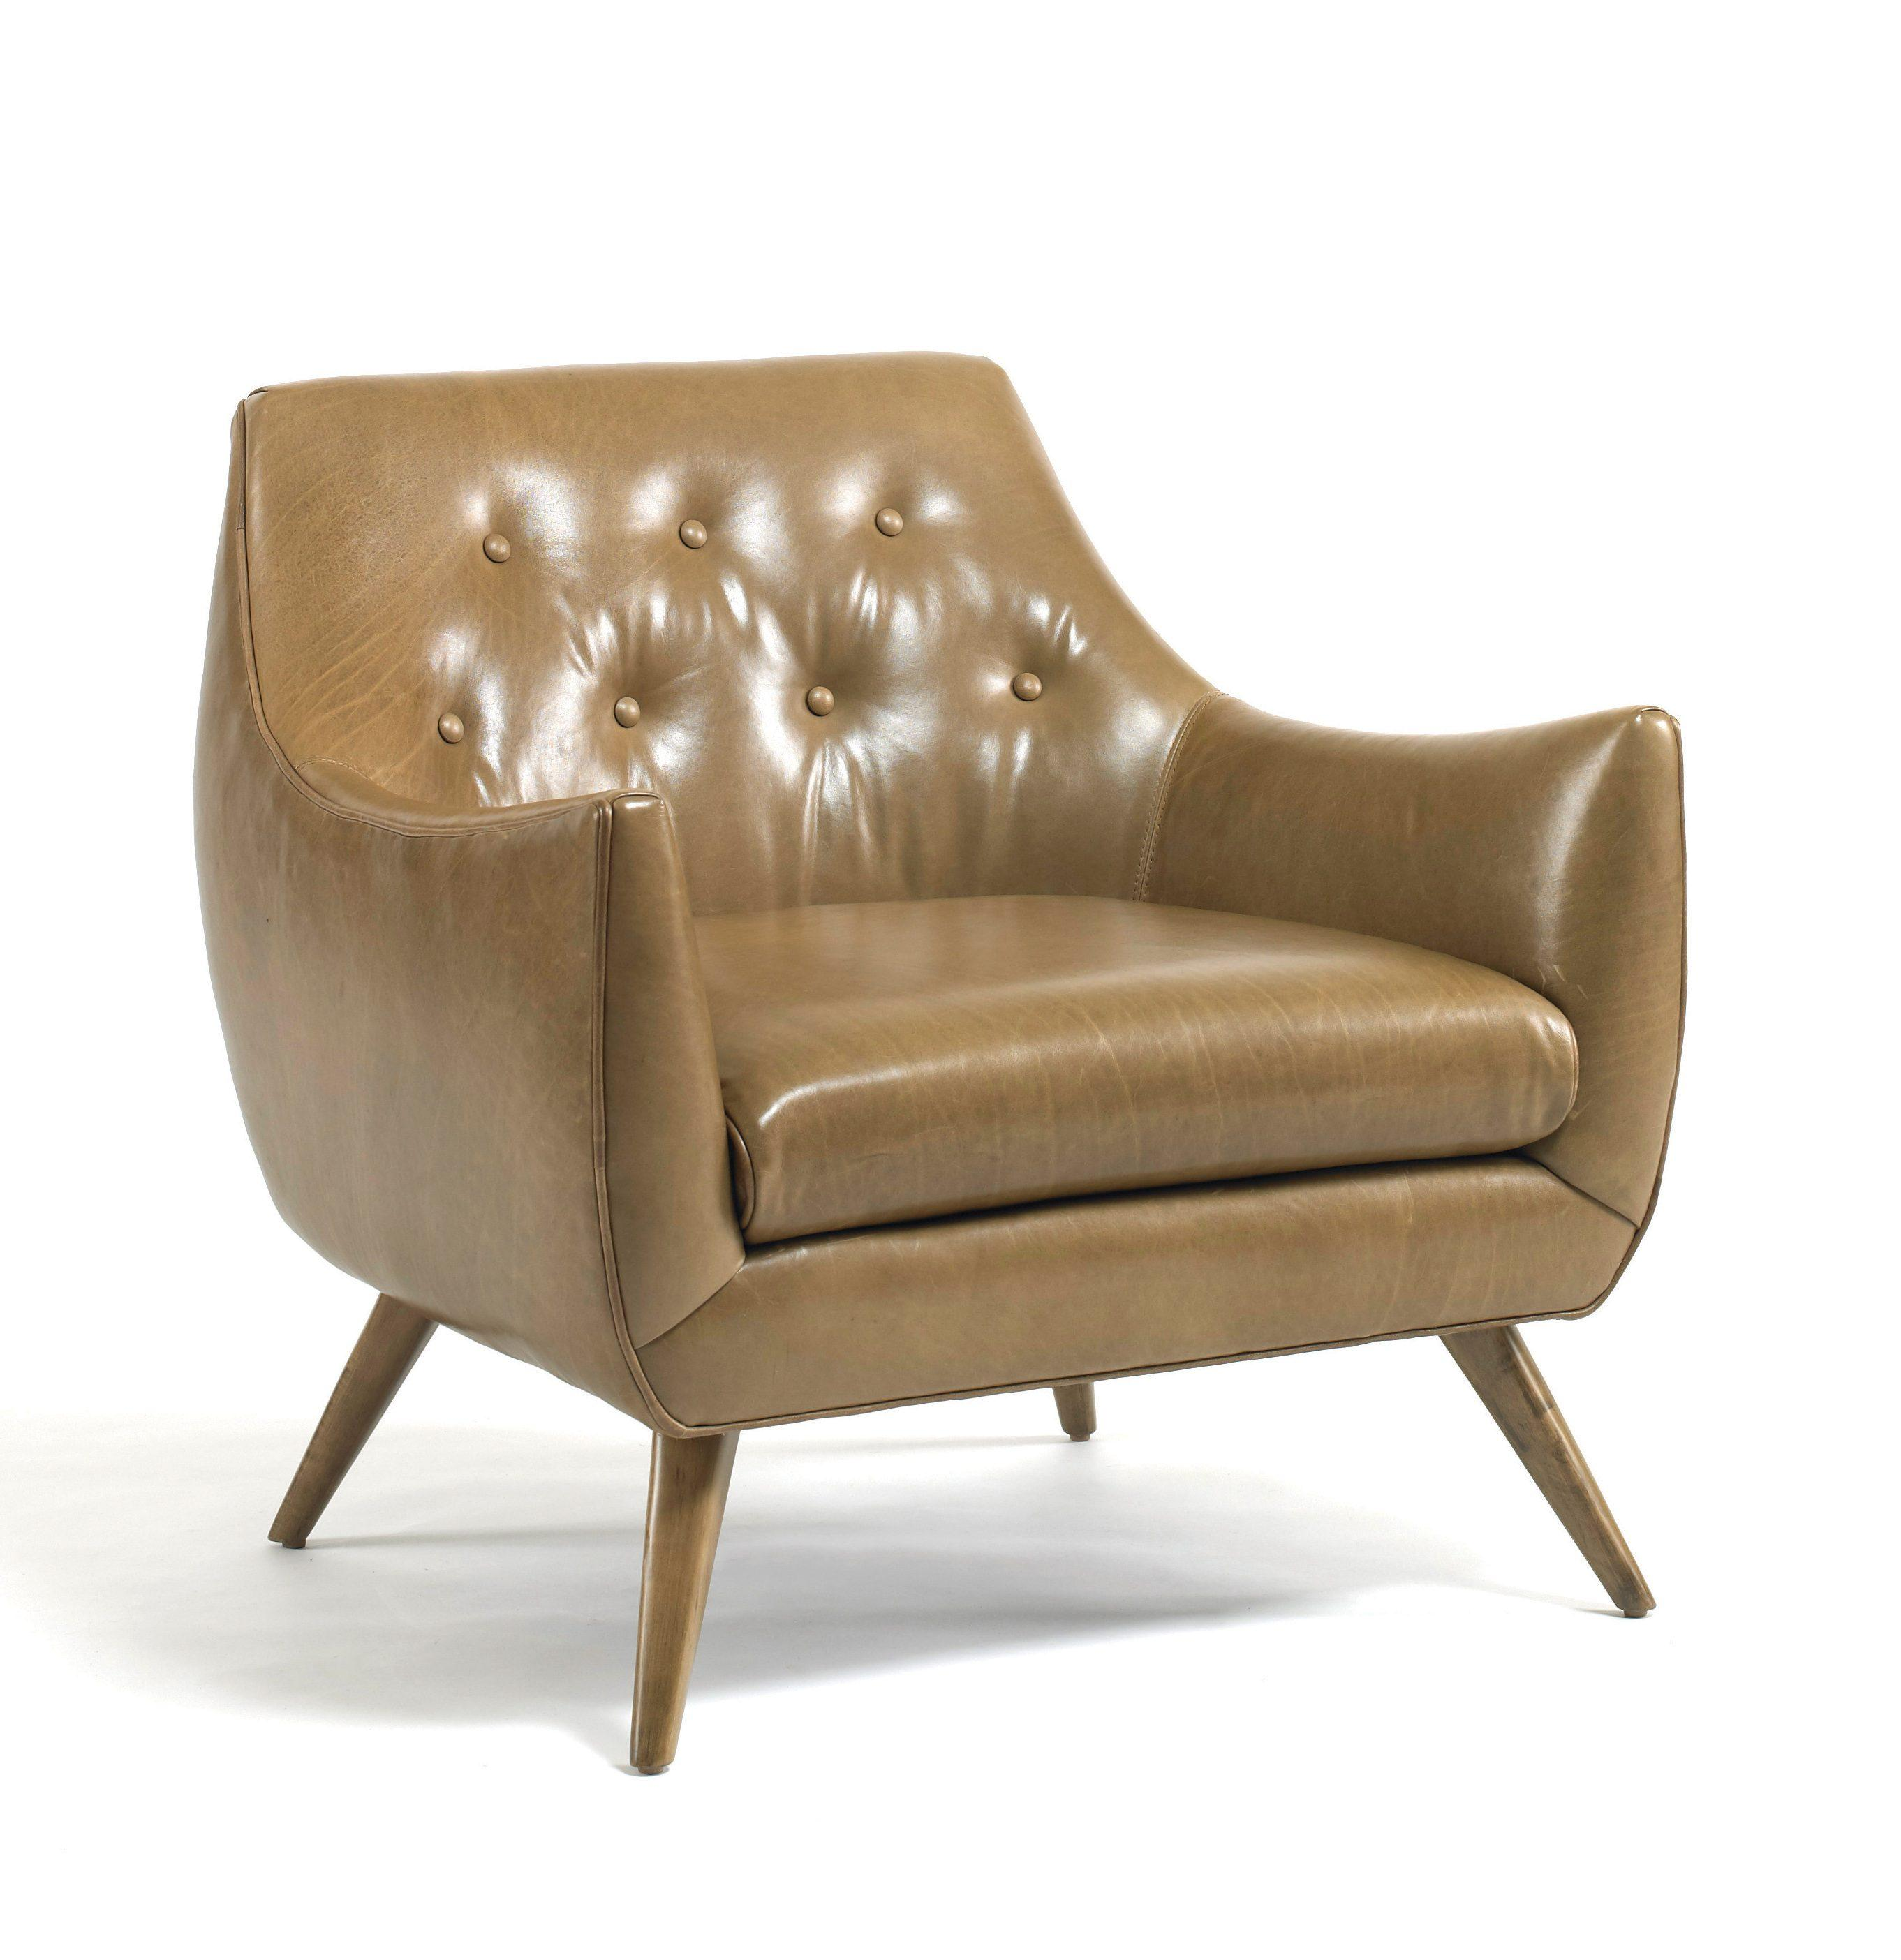 L4168 C1 Marley Leather Chair